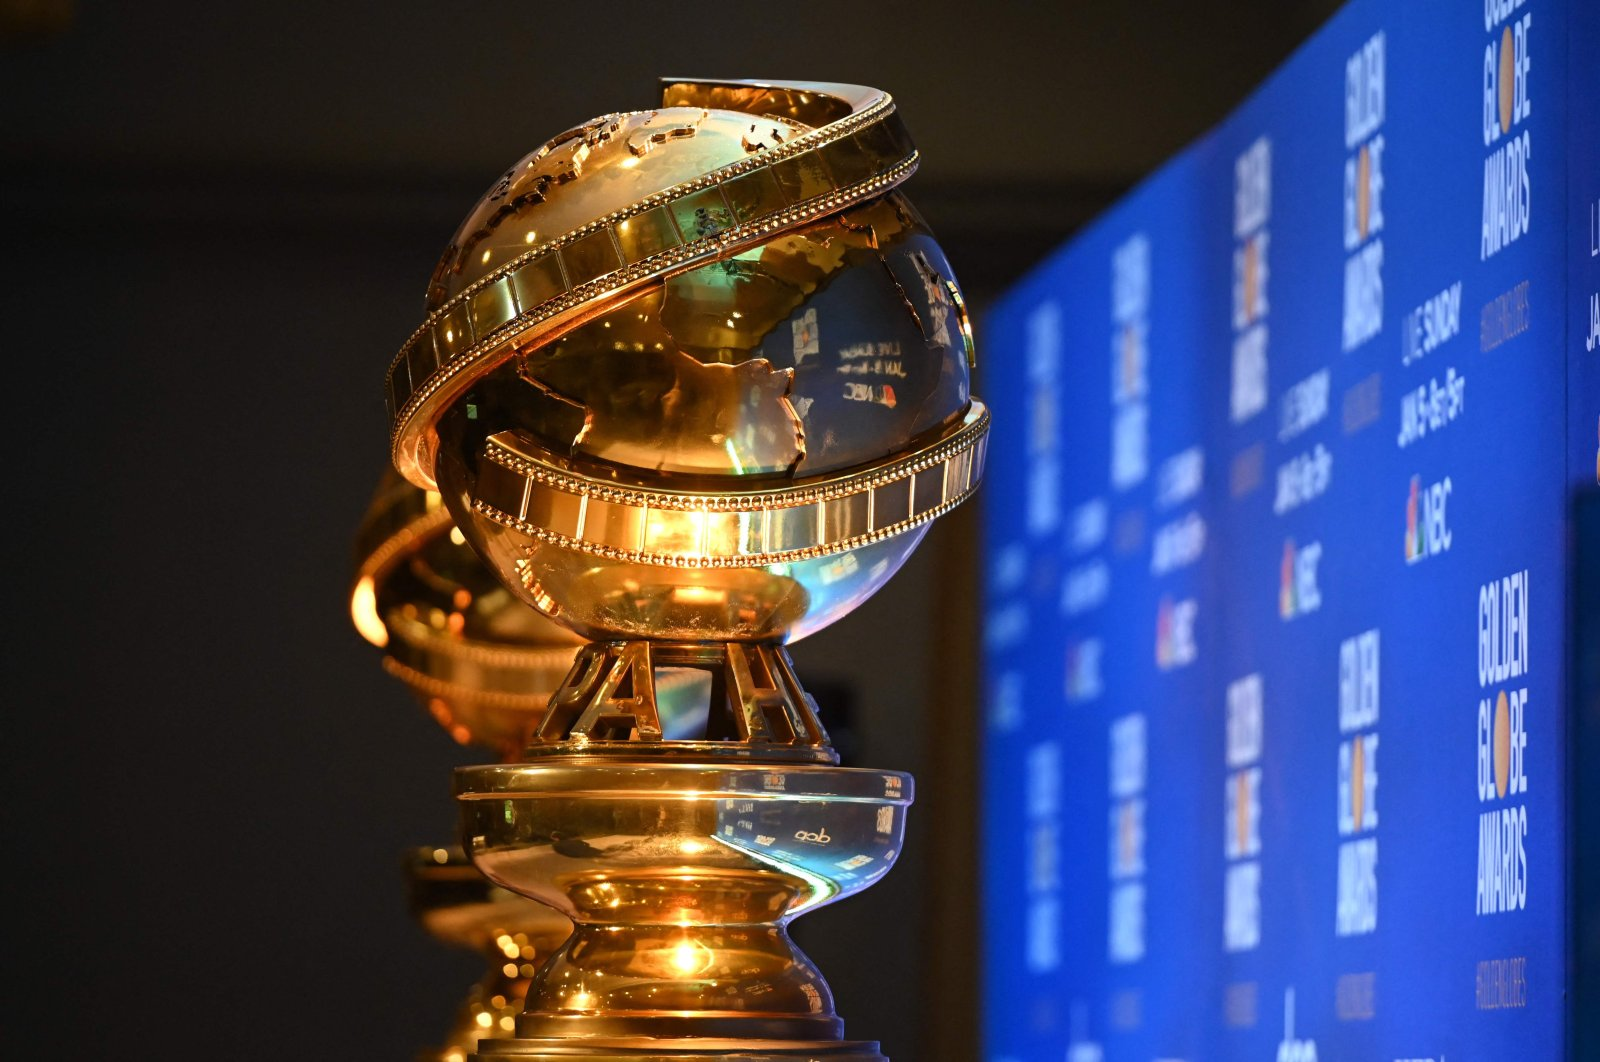 Golden Globe trophies are set by the stage ahead of the 77th Annual Golden Globe Awards nominations announcement at the Beverly Hilton hotel in Beverly Hills, California, the U.S., Dec. 9, 2019. (AFP Photo)